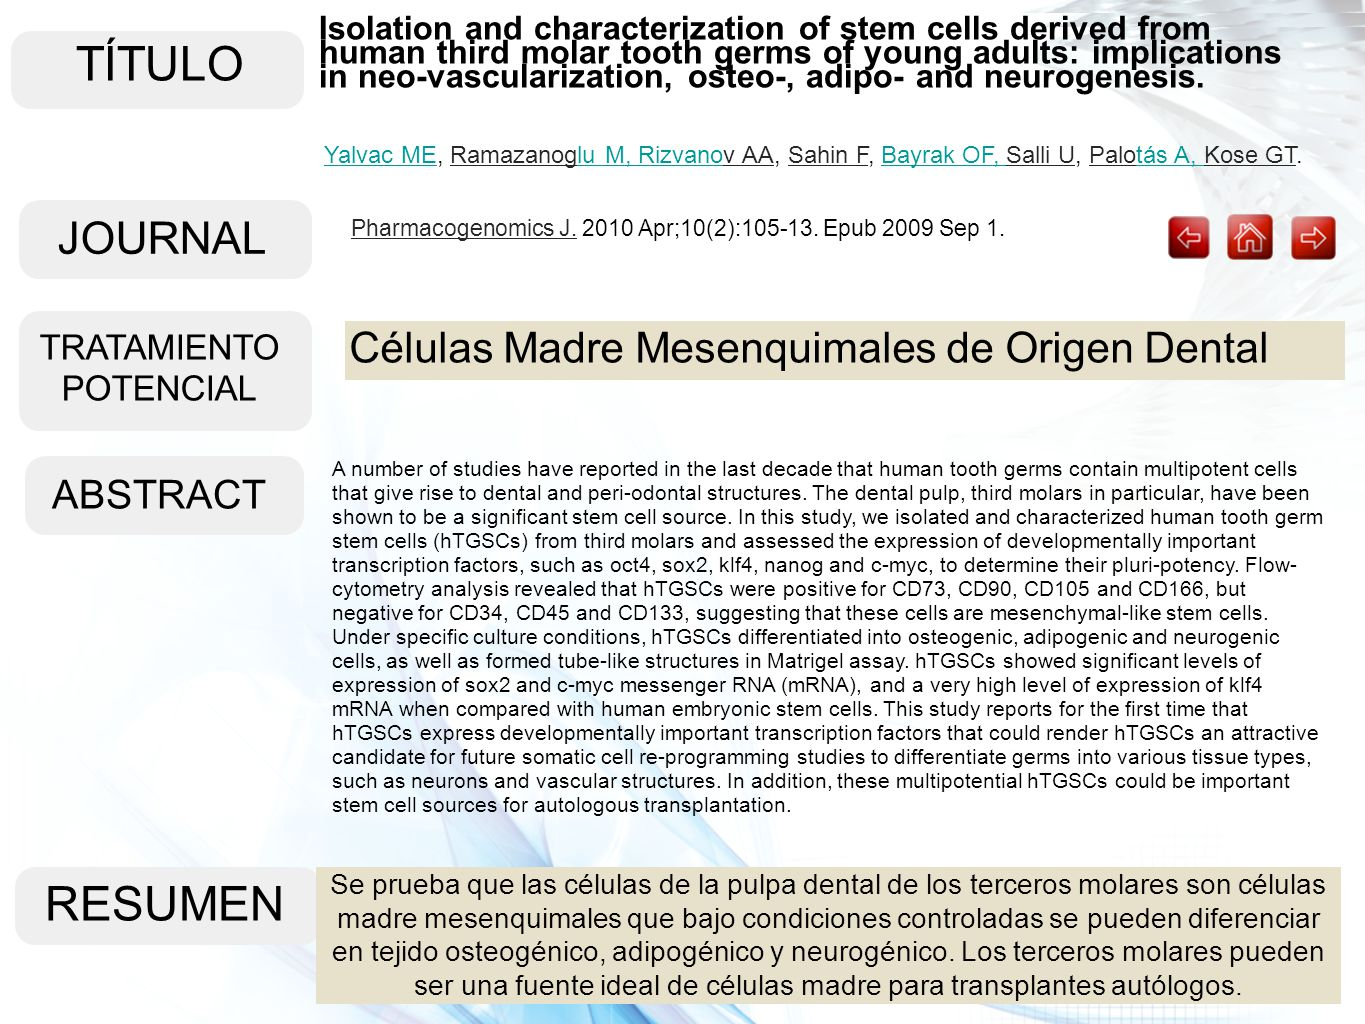 TÍTULO ABSTRACT RESUMEN Isolation and characterization of stem cells derived from human third molar tooth germs of young adults: implications in neo-vascularization, osteo-, adipo- and neurogenesis.